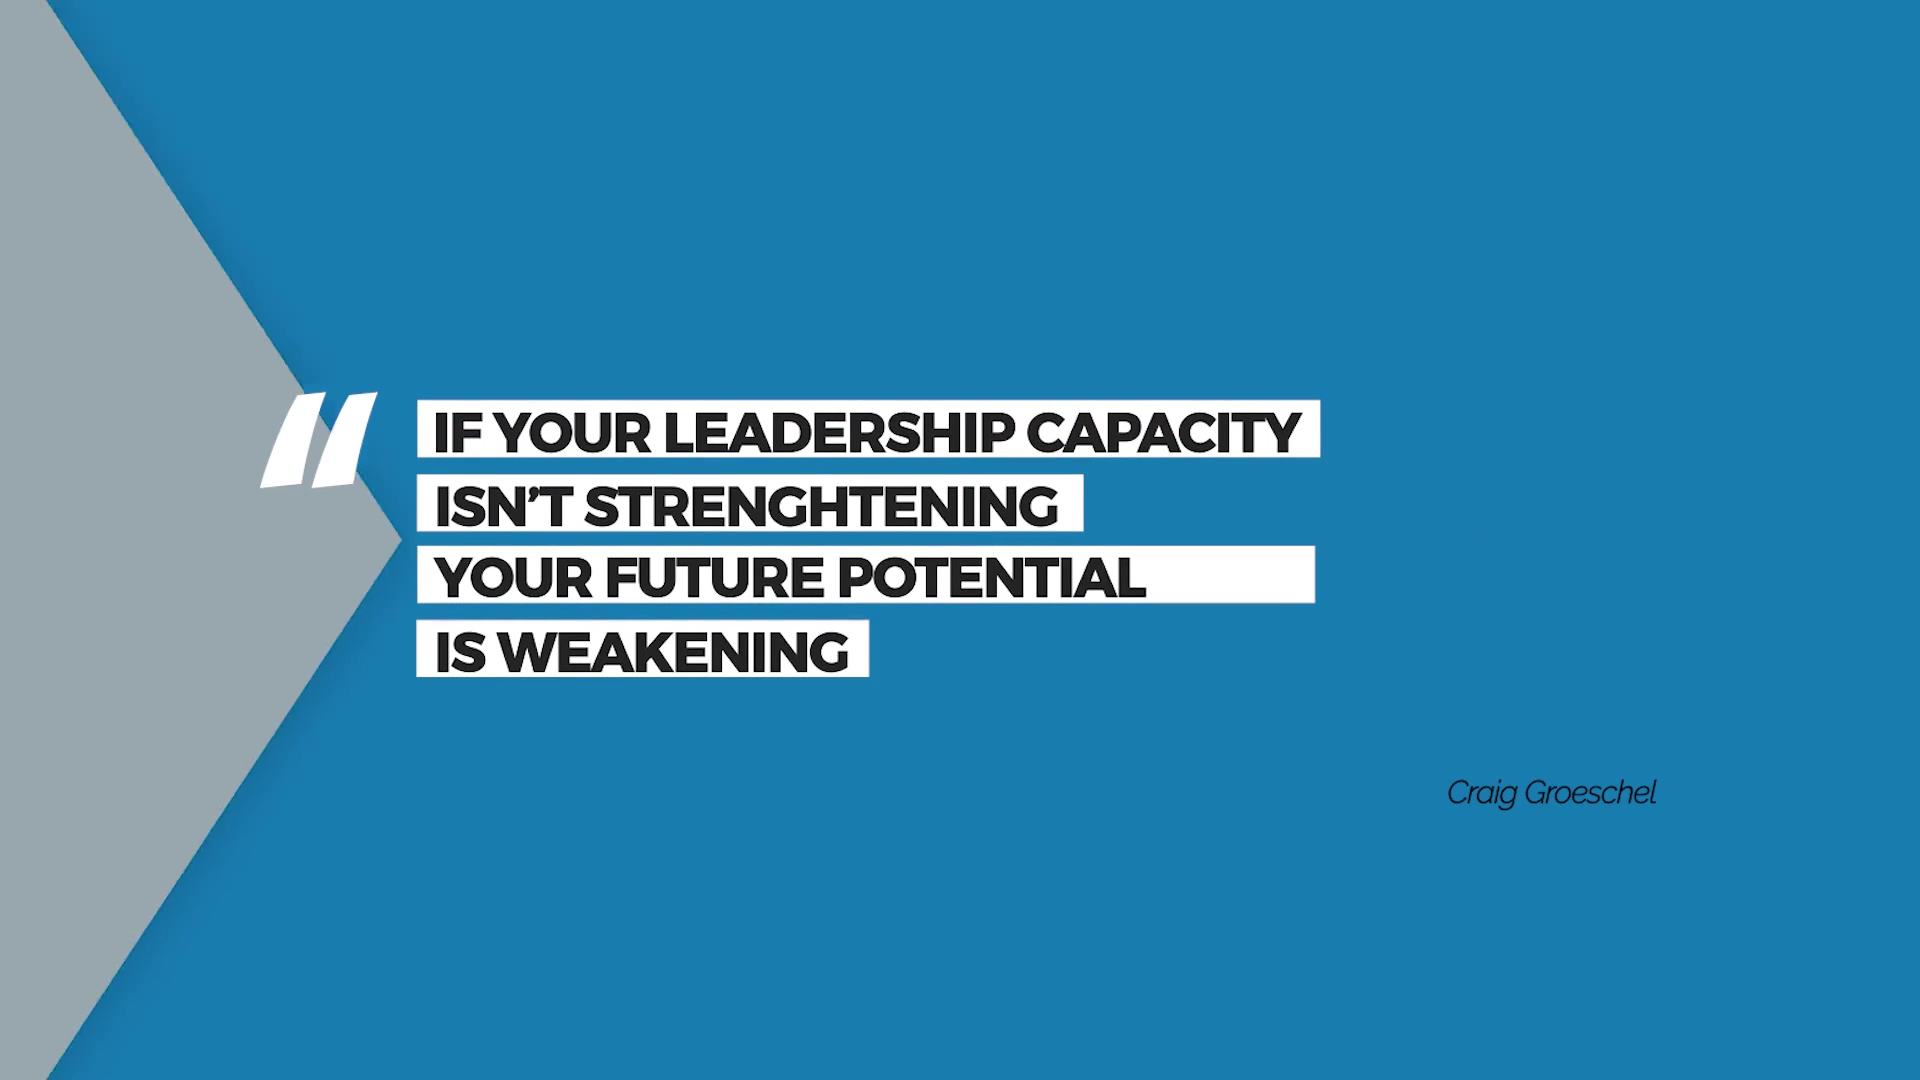 Episode 5: Grow Your Leadership Capacity